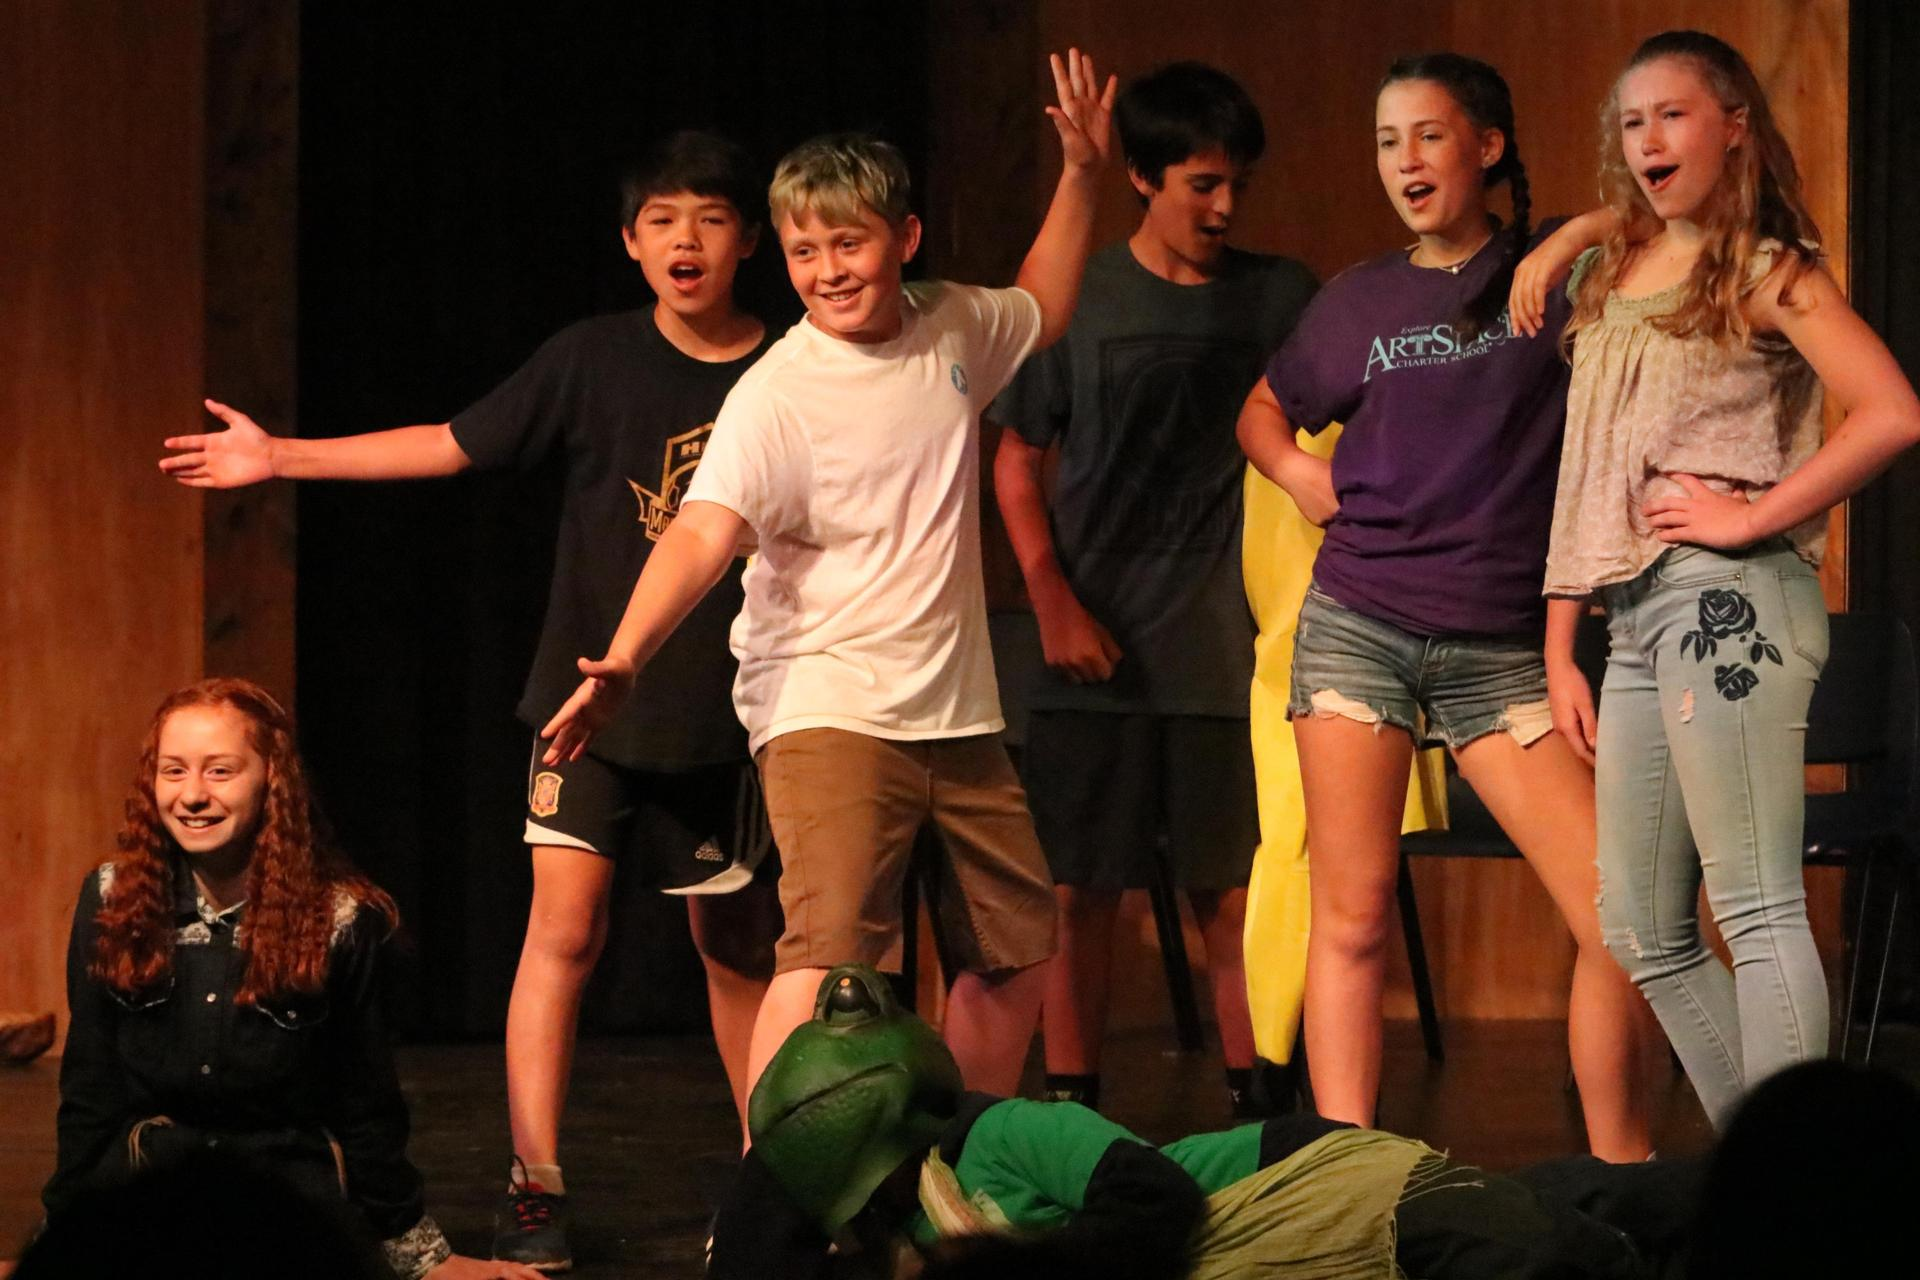 Middle schoolers pose, smiling, on the theater stage.